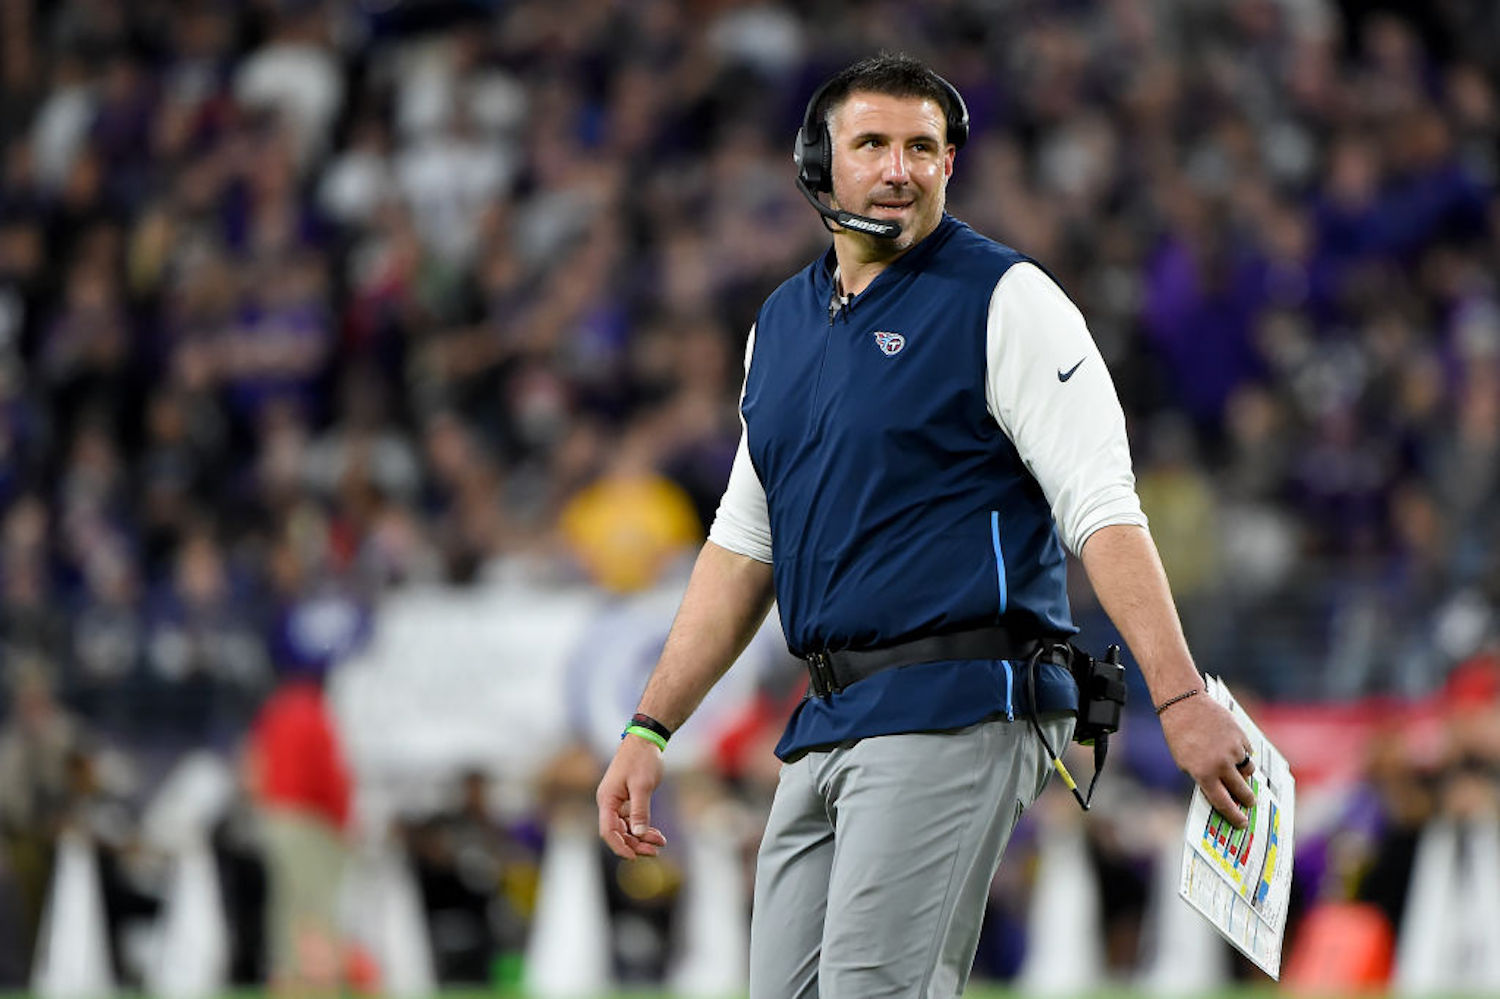 Mike Vrabel Made the Most Genius Coaching Move and You Probably Didn't Even Notice It